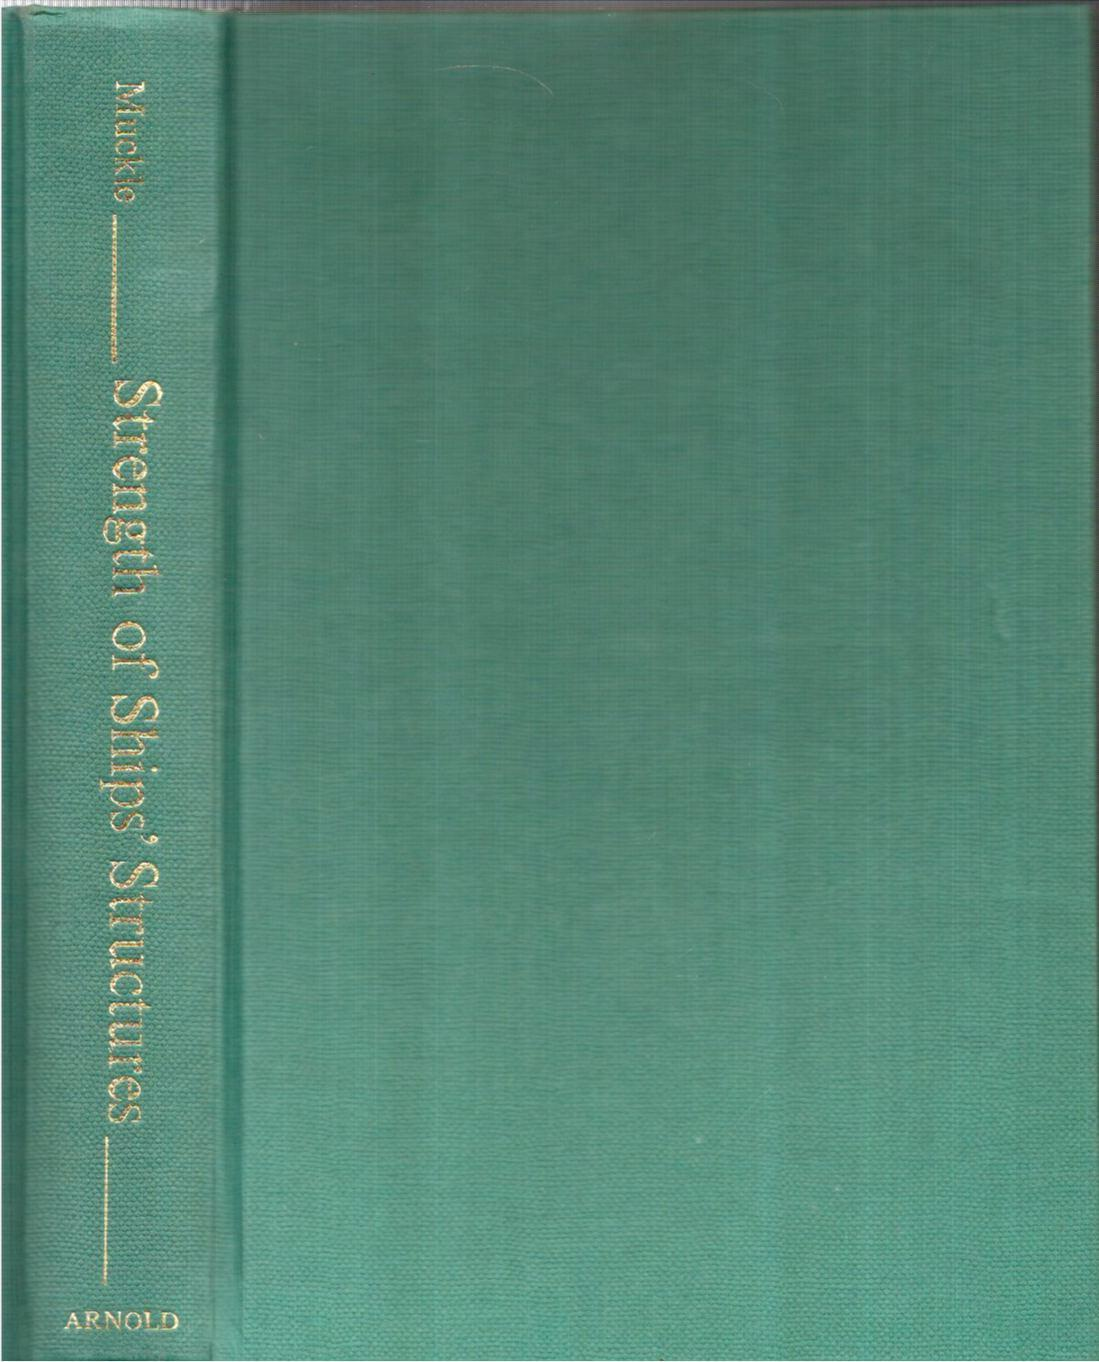 Stength of Ships' Structures Muckle, William Very Good Hardcover